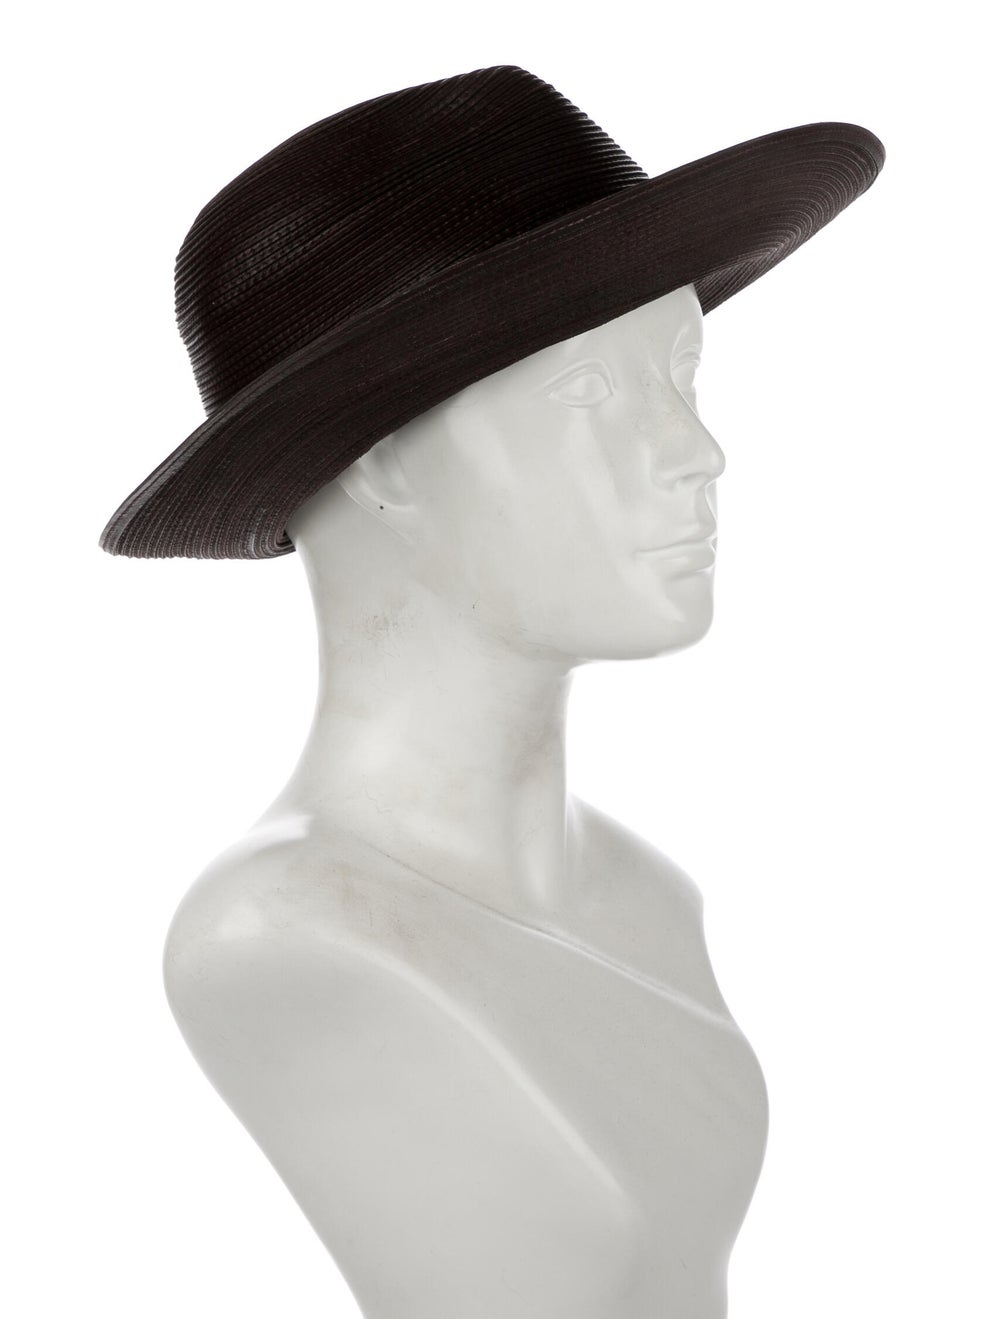 Patricia Underwood Leather Hat Brown - image 3